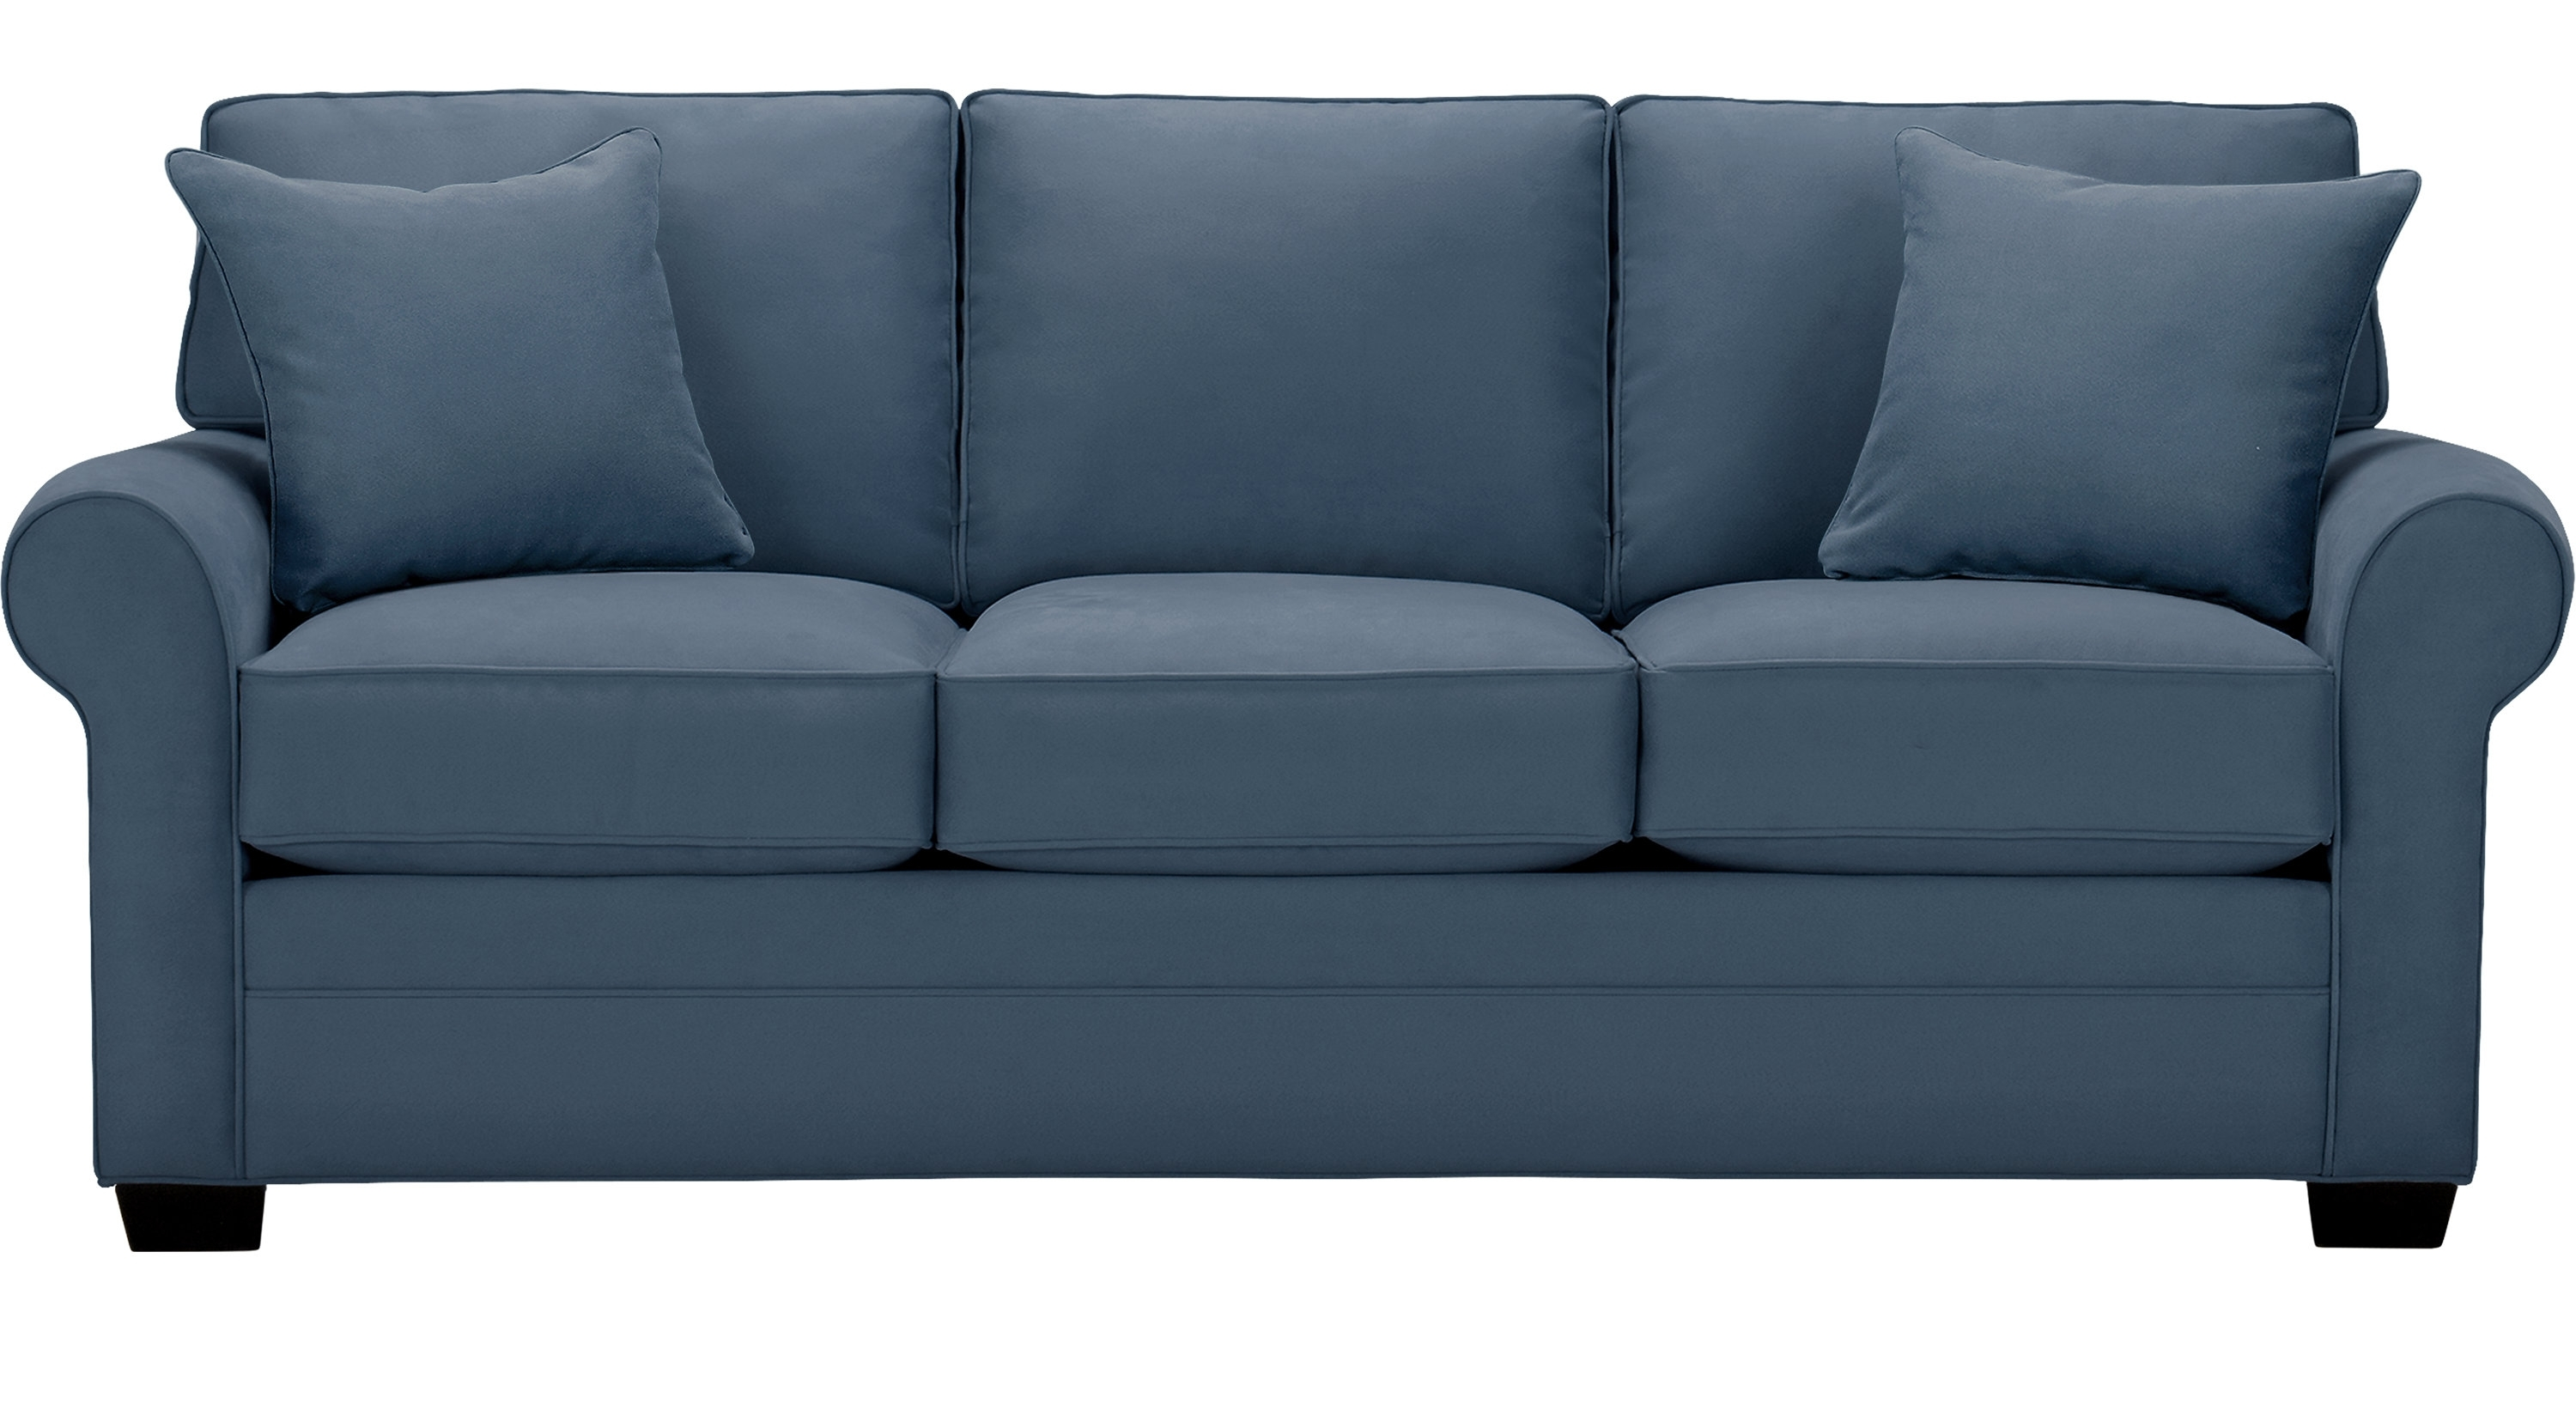 Most Current Cindy Crawford Sofas For $ (View 18 of 20)